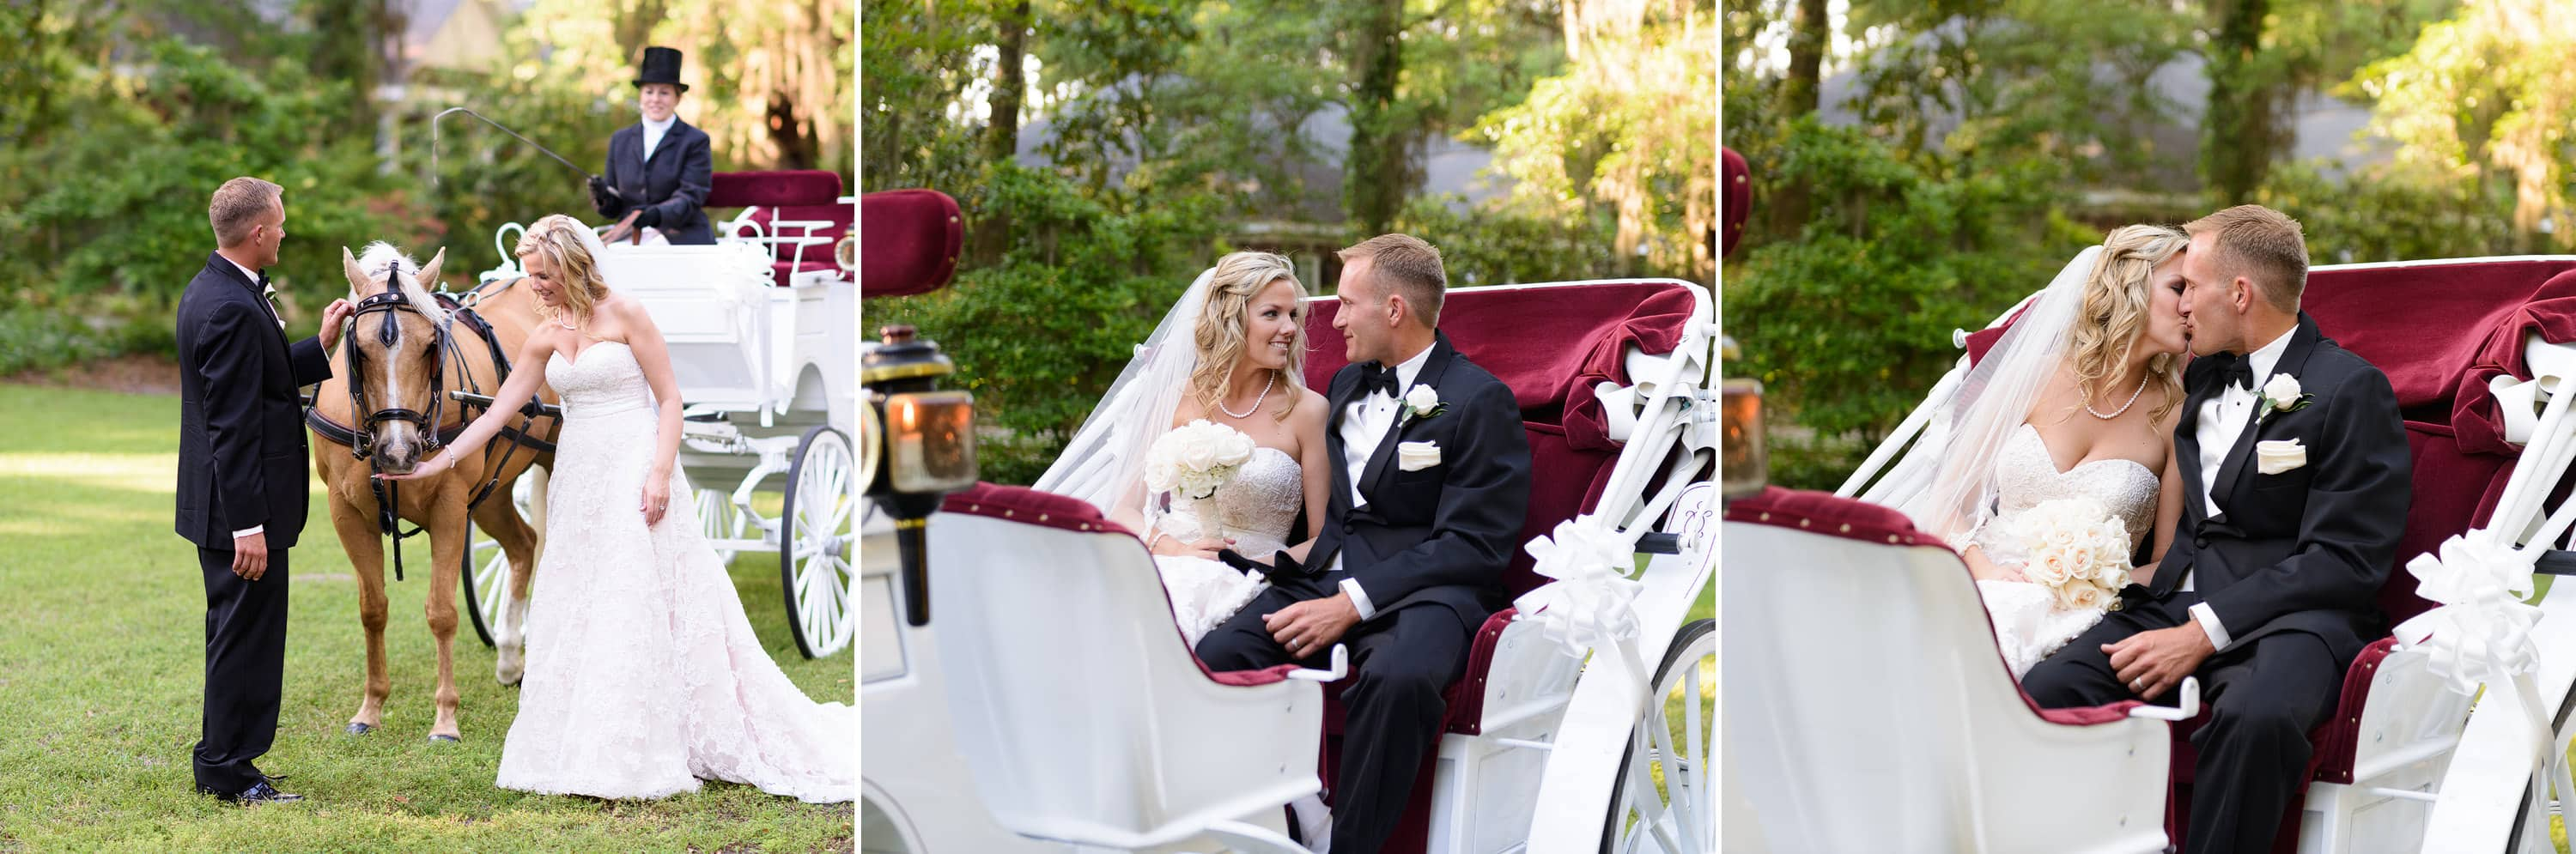 Wedding at Wachesaw Plantation with horse drawn carriage